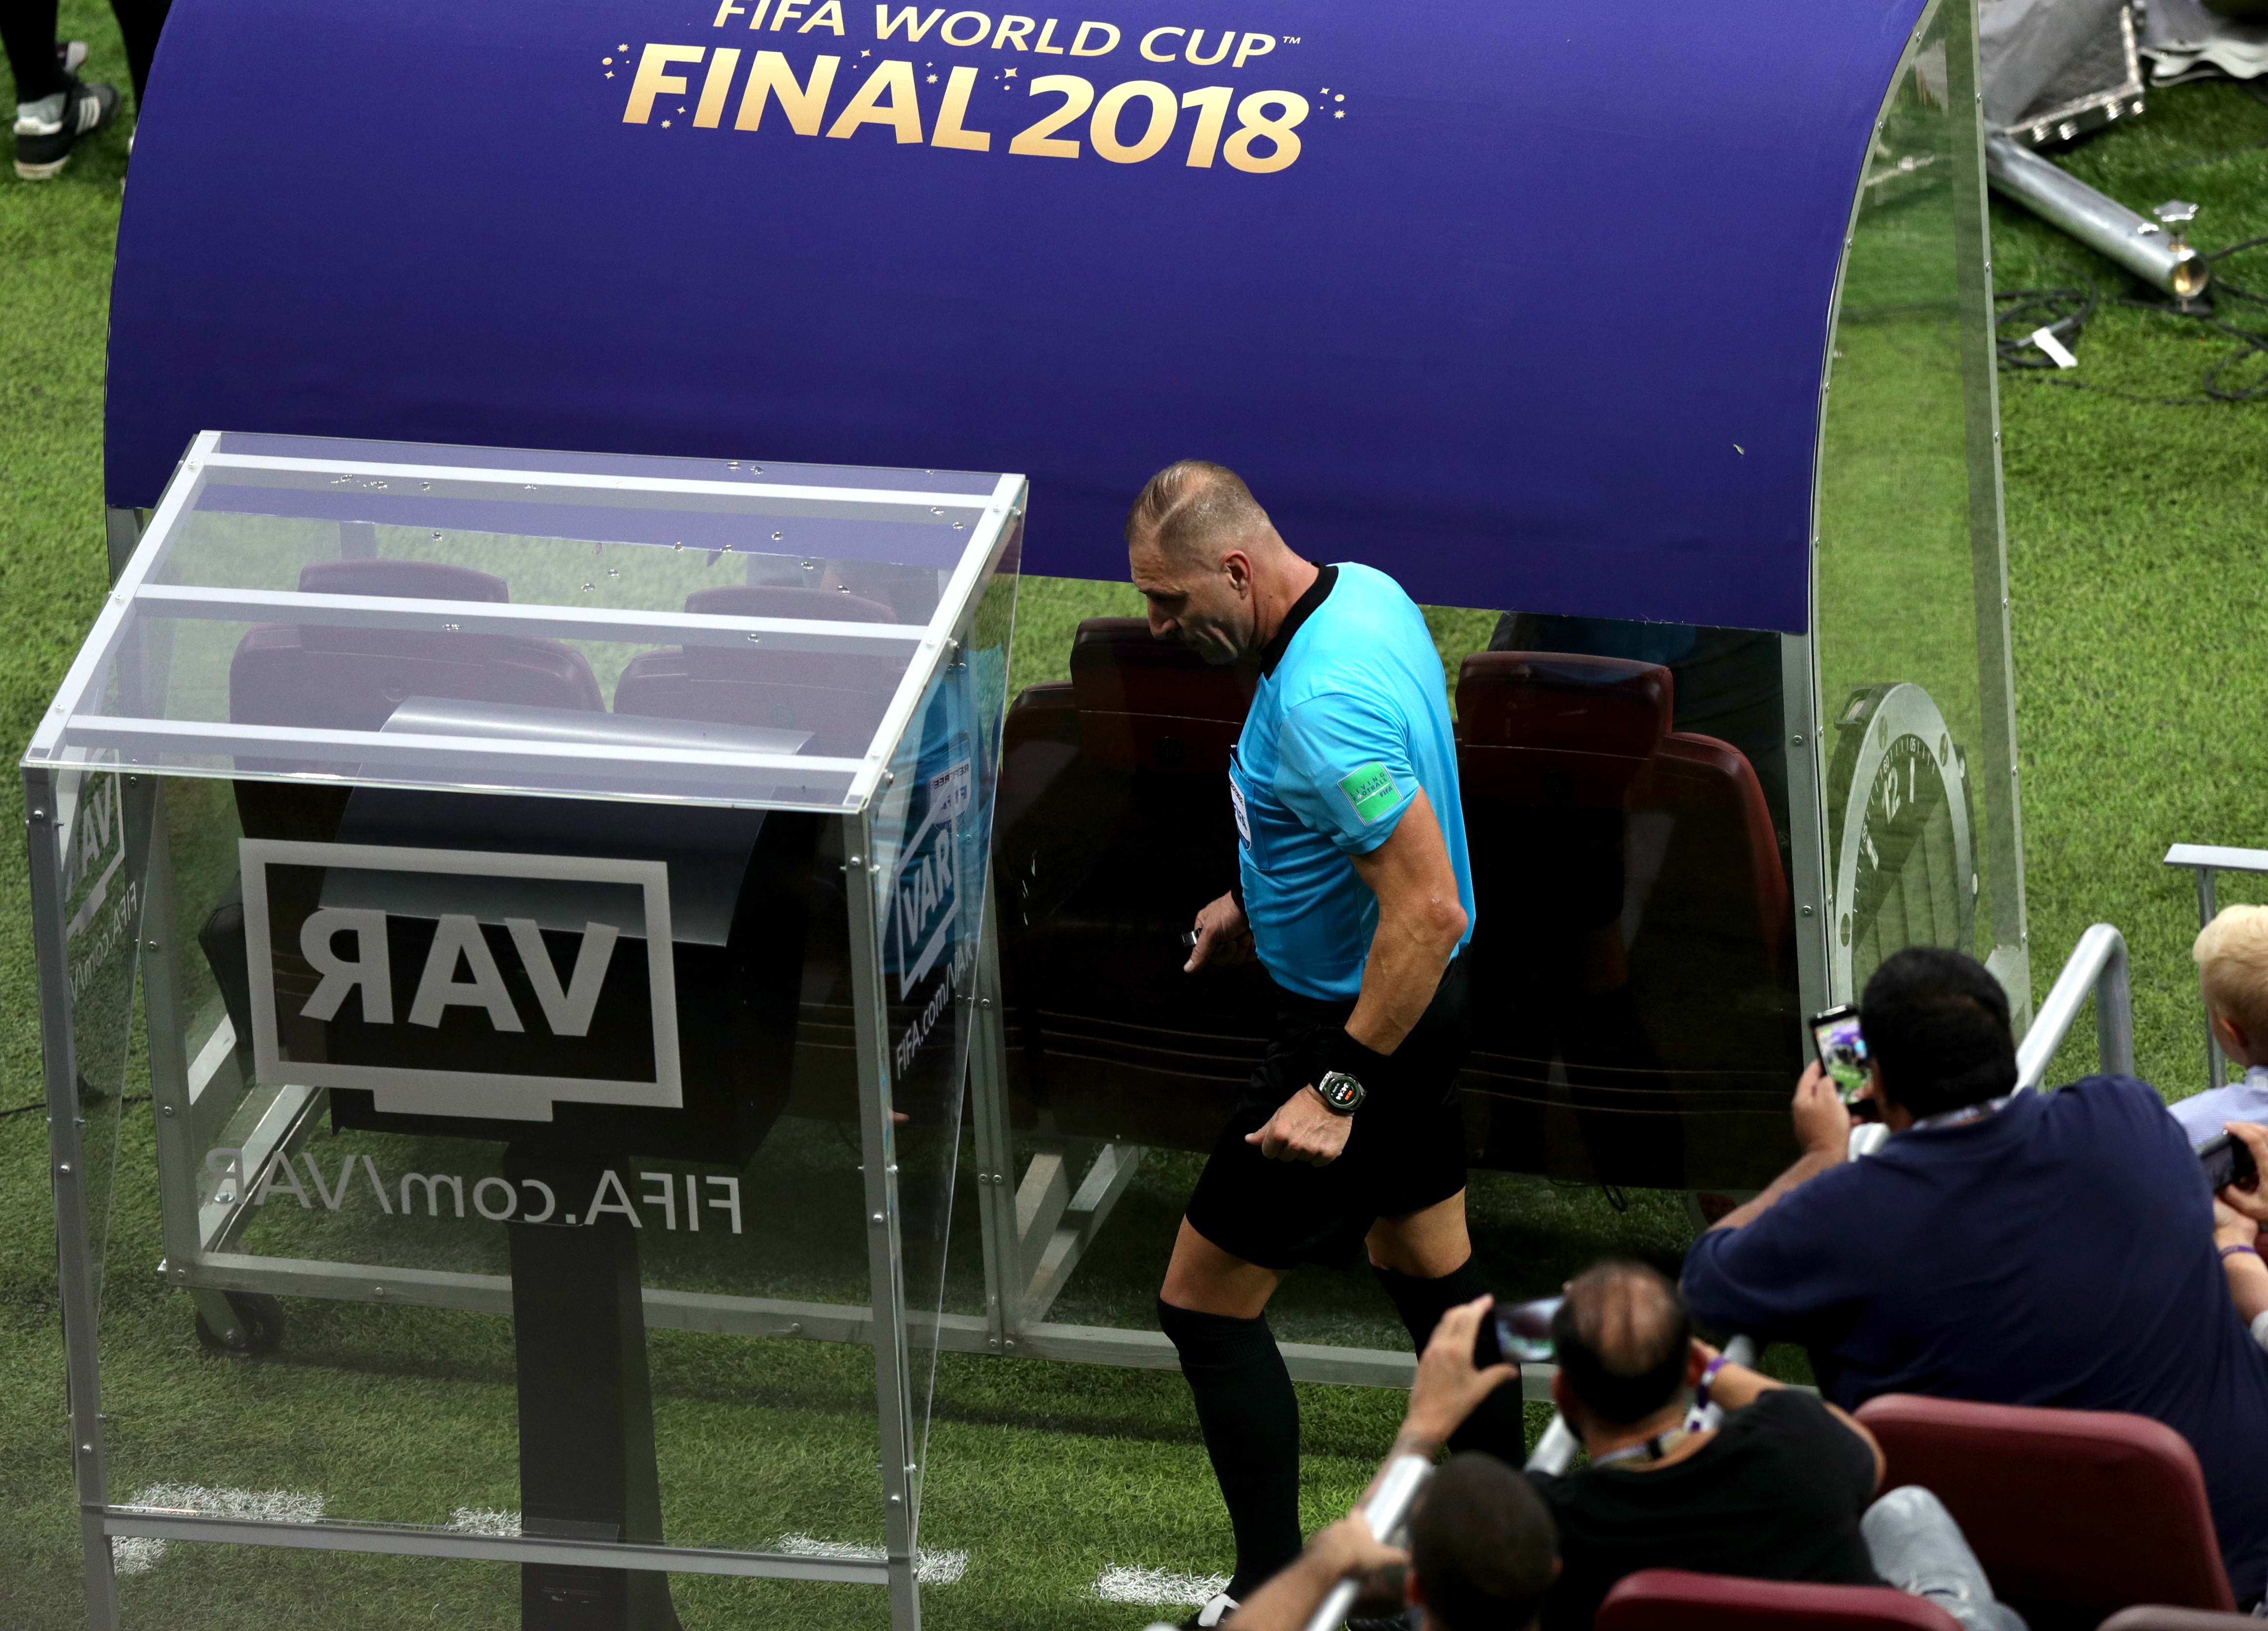 Match referee Nestor Pitana used the VAR system for the first time in a World Cup final